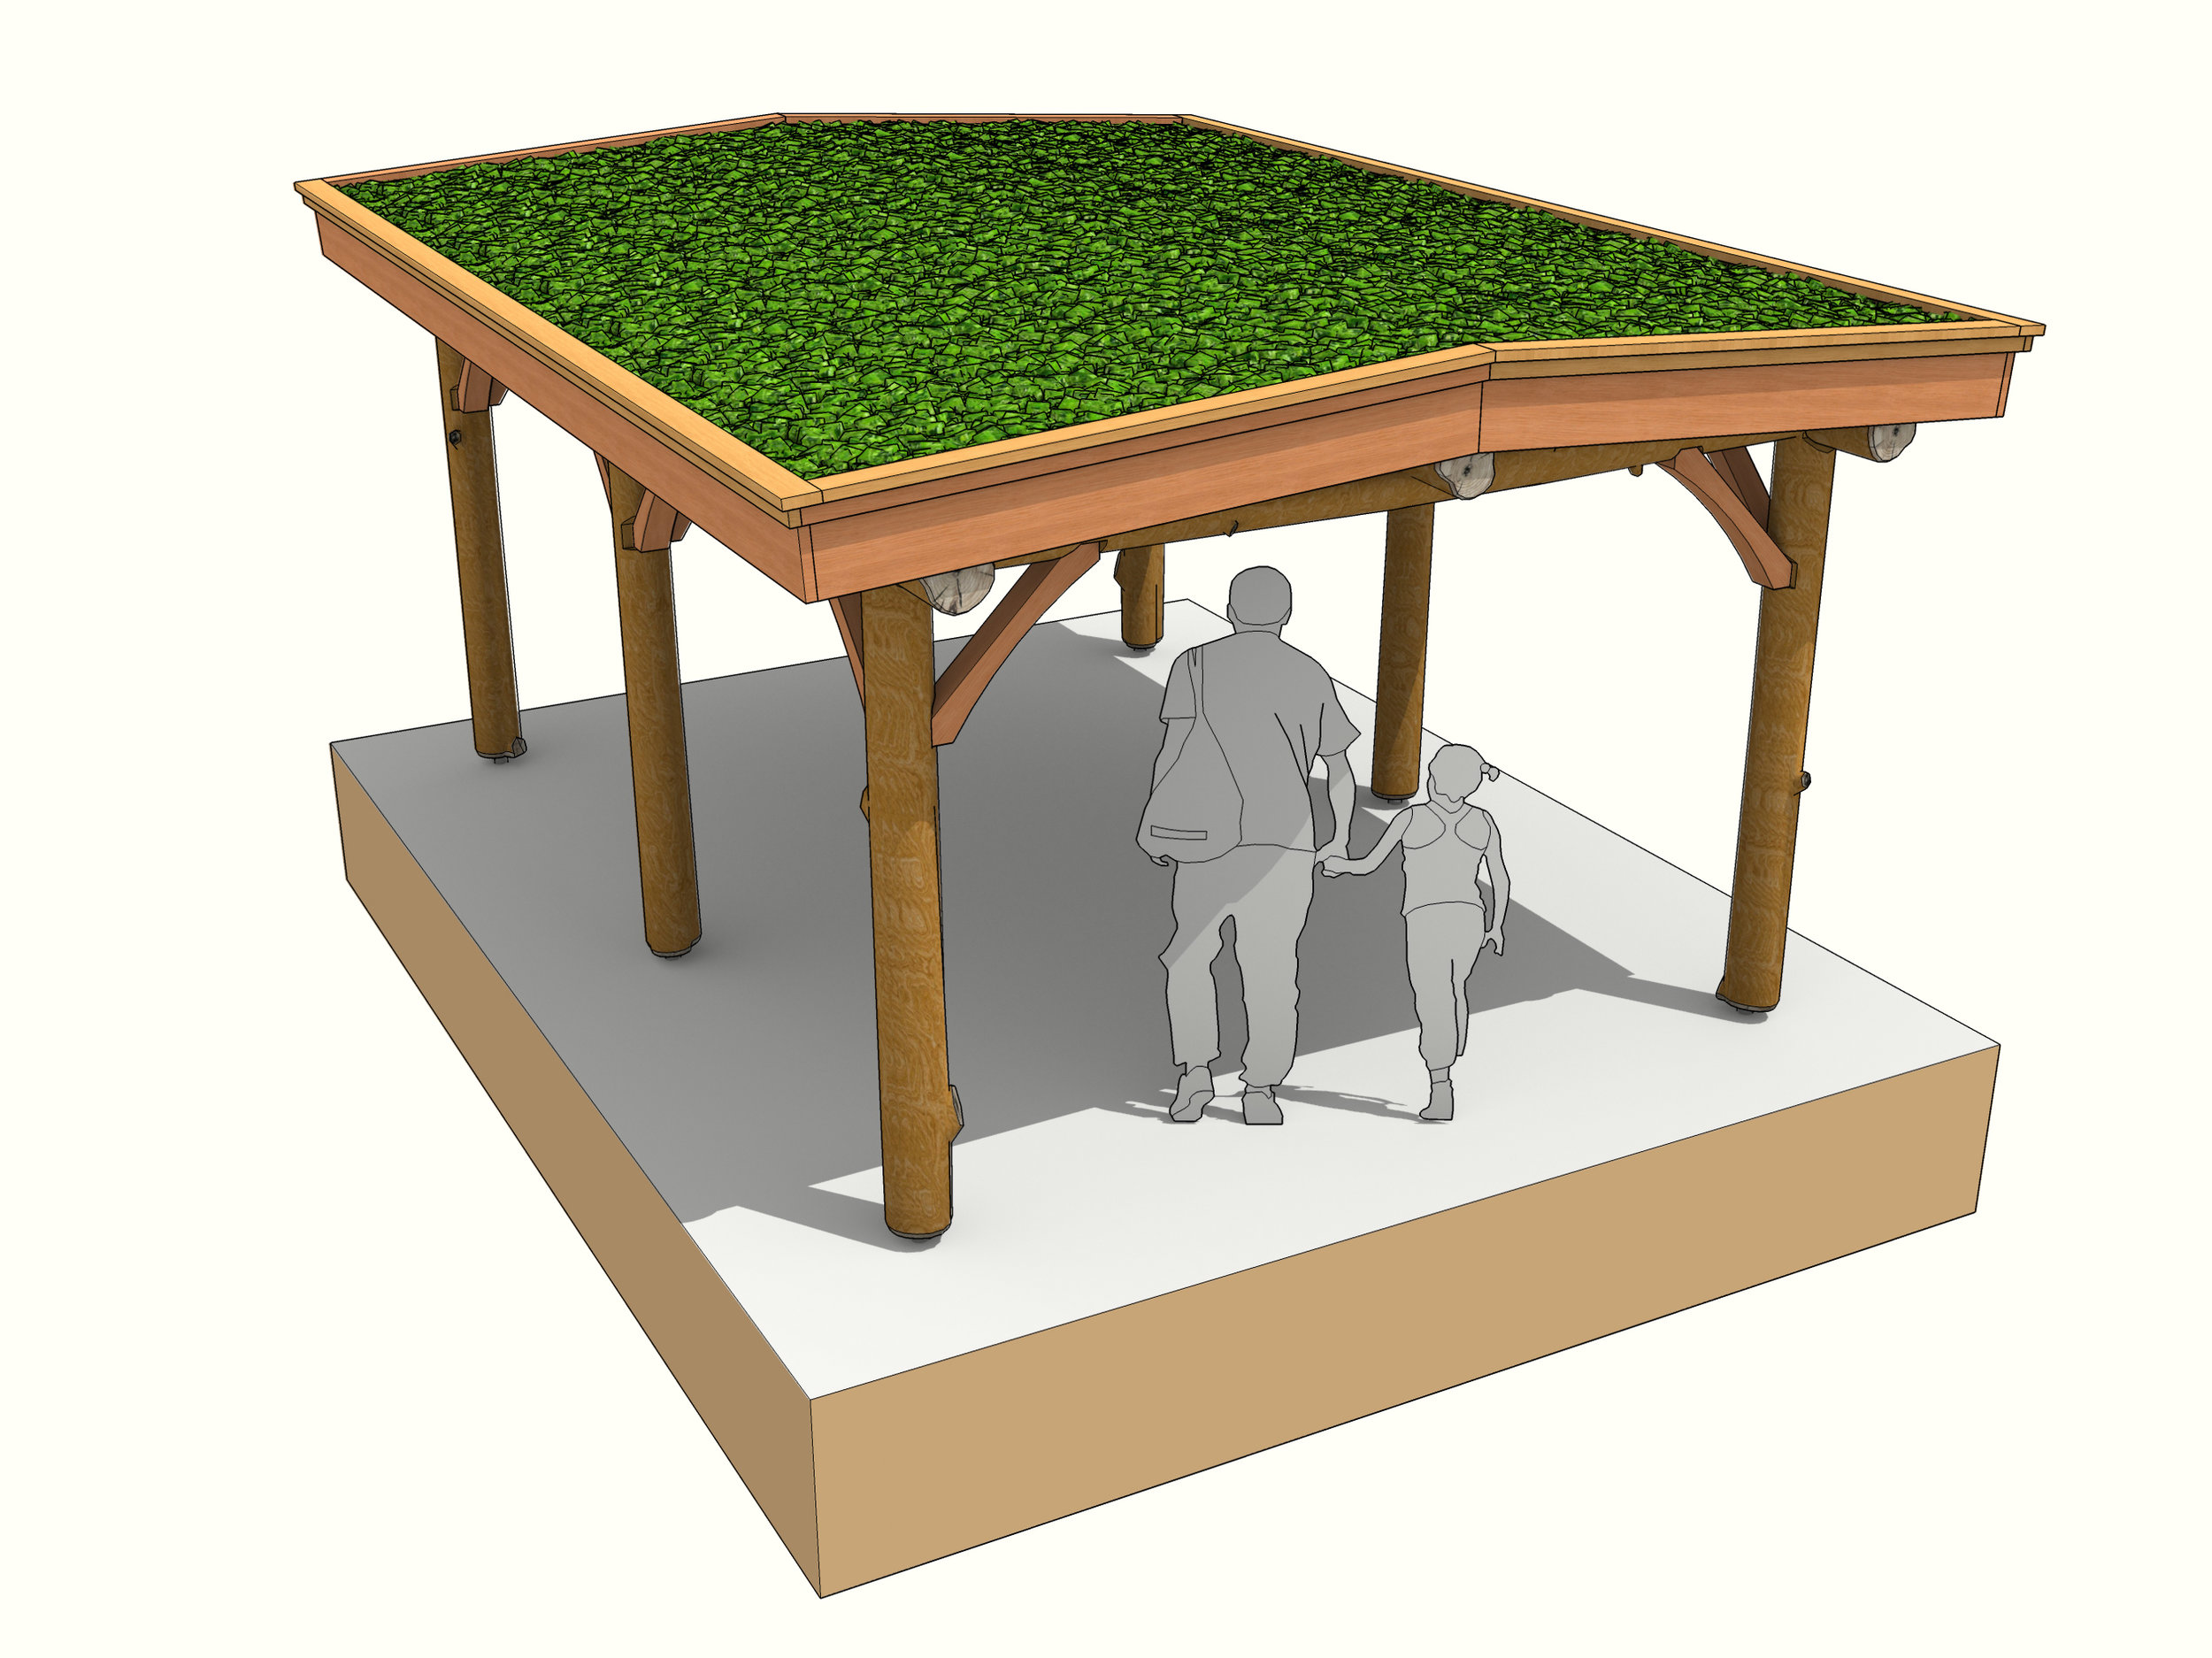 car port green roof twin pitch round pole timber frame gazeebo garden shelter.jpg